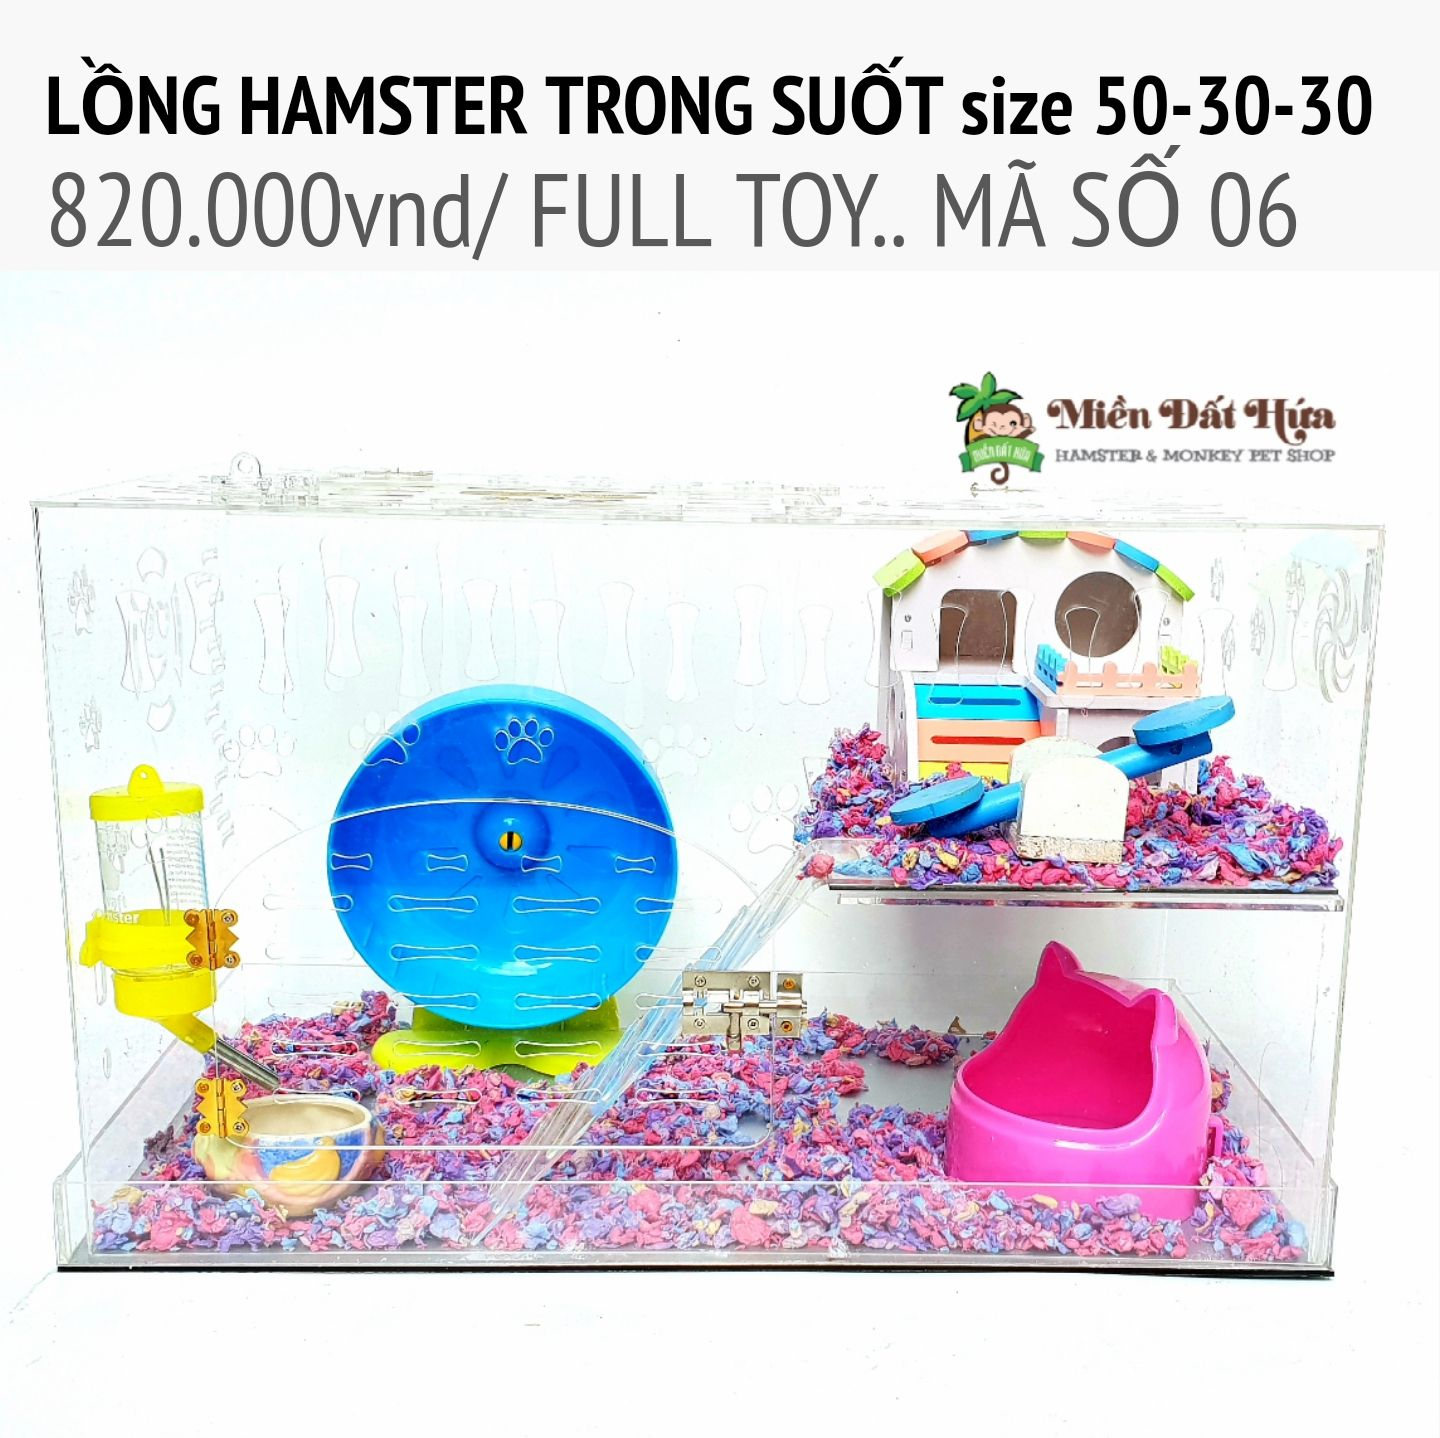 LỒNG hamster trong suốt size 50-30-30 ms06